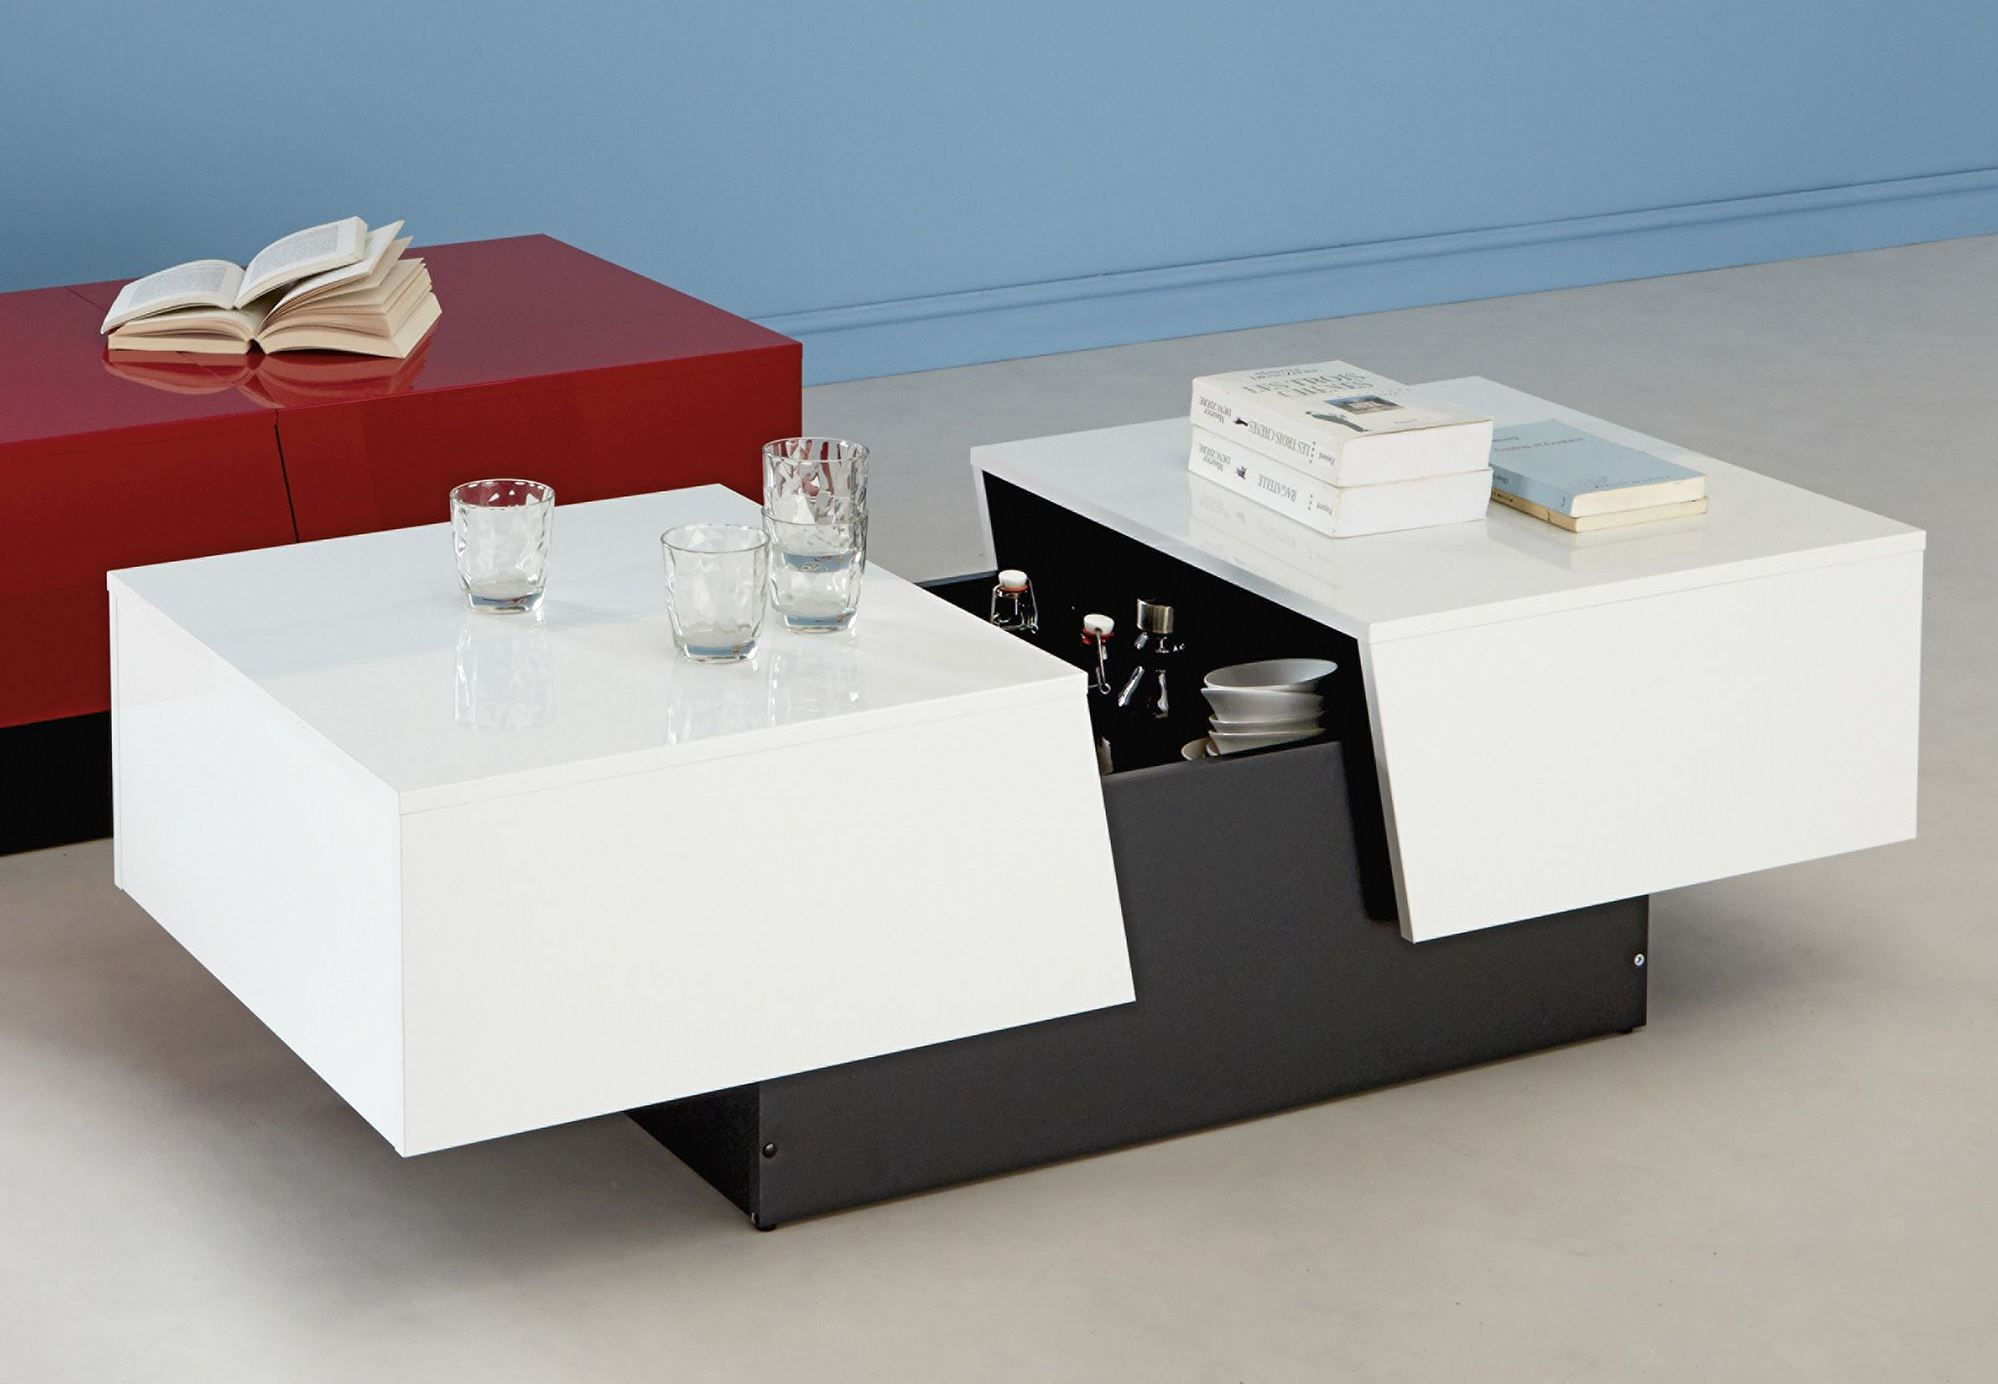 Comment choisir une table basse multifonction bnbstaging le blog - Table basse bar design ...